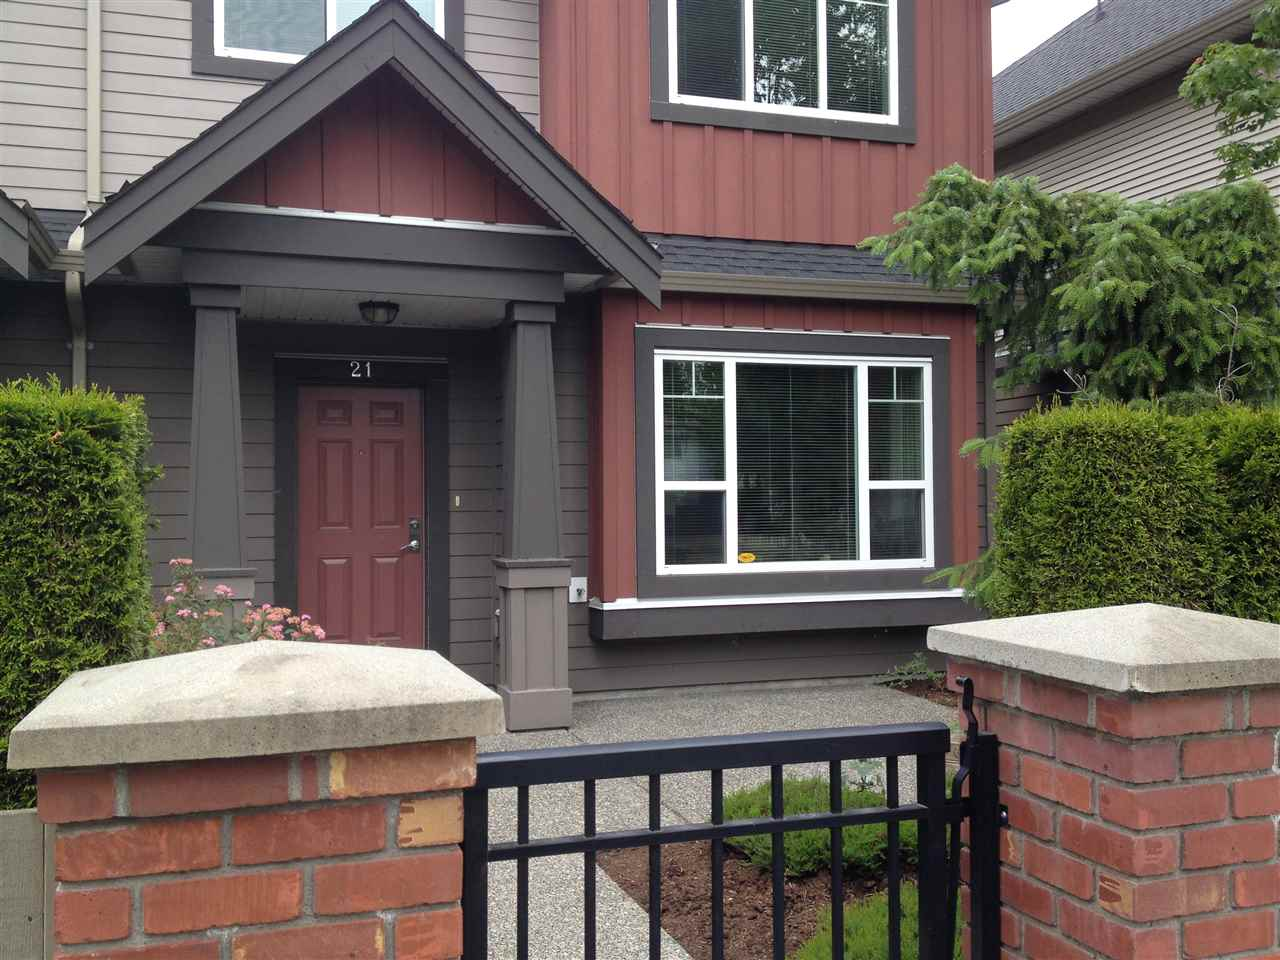 Main Photo: 21 9699 SILLS Avenue in Richmond: McLennan North Townhouse for sale : MLS®# R2075938